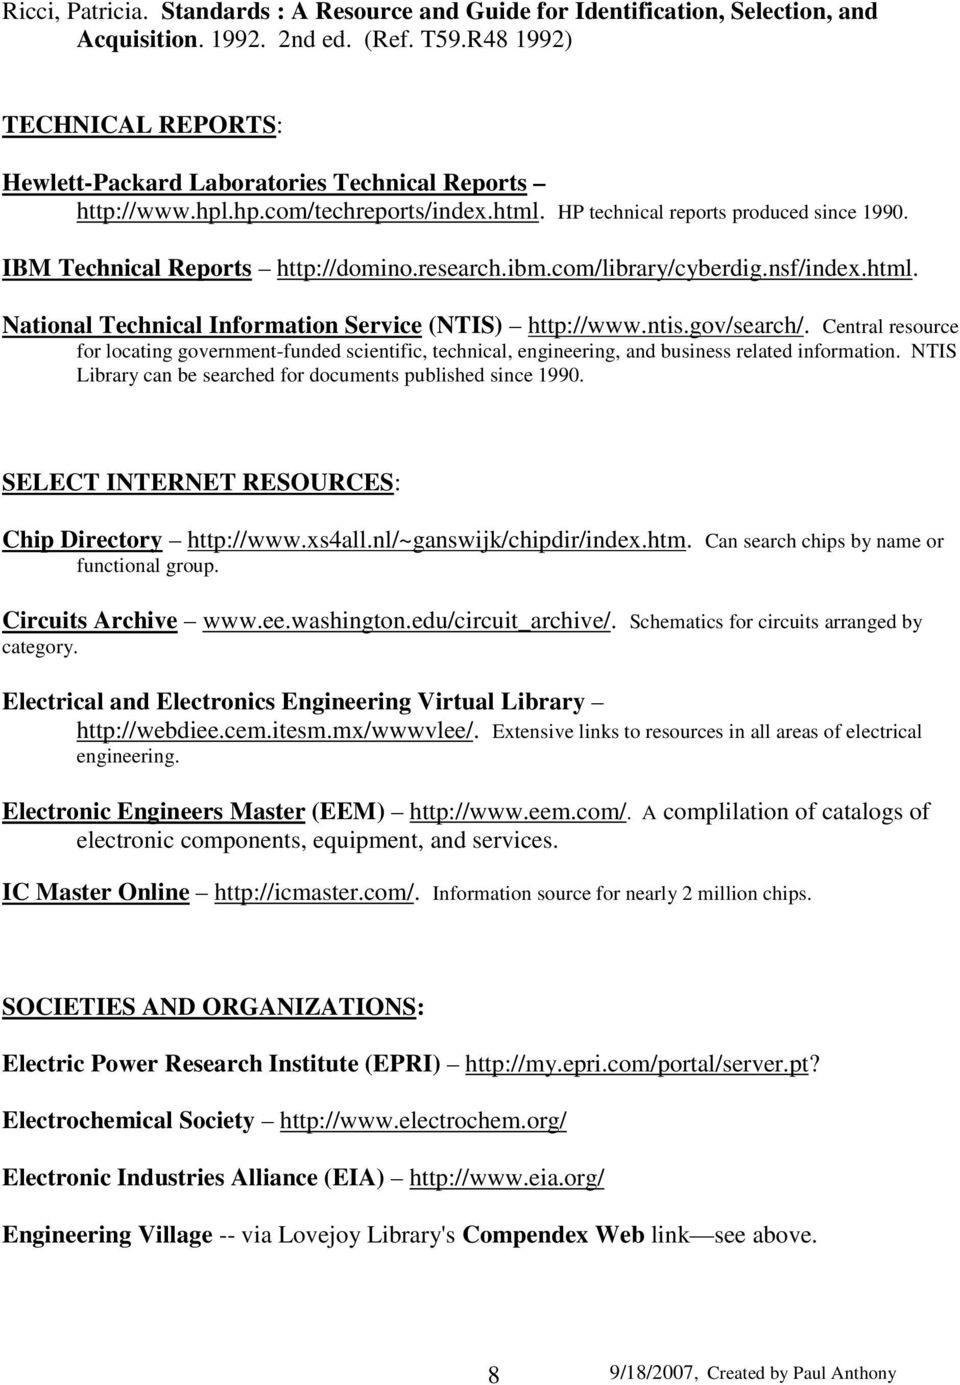 Library And Information Resources In Electrical Engineering Pdf Categories Electronics Circuits Researchibmcom Cyberdignsf Indexhtml 9 Institute Of Engineers